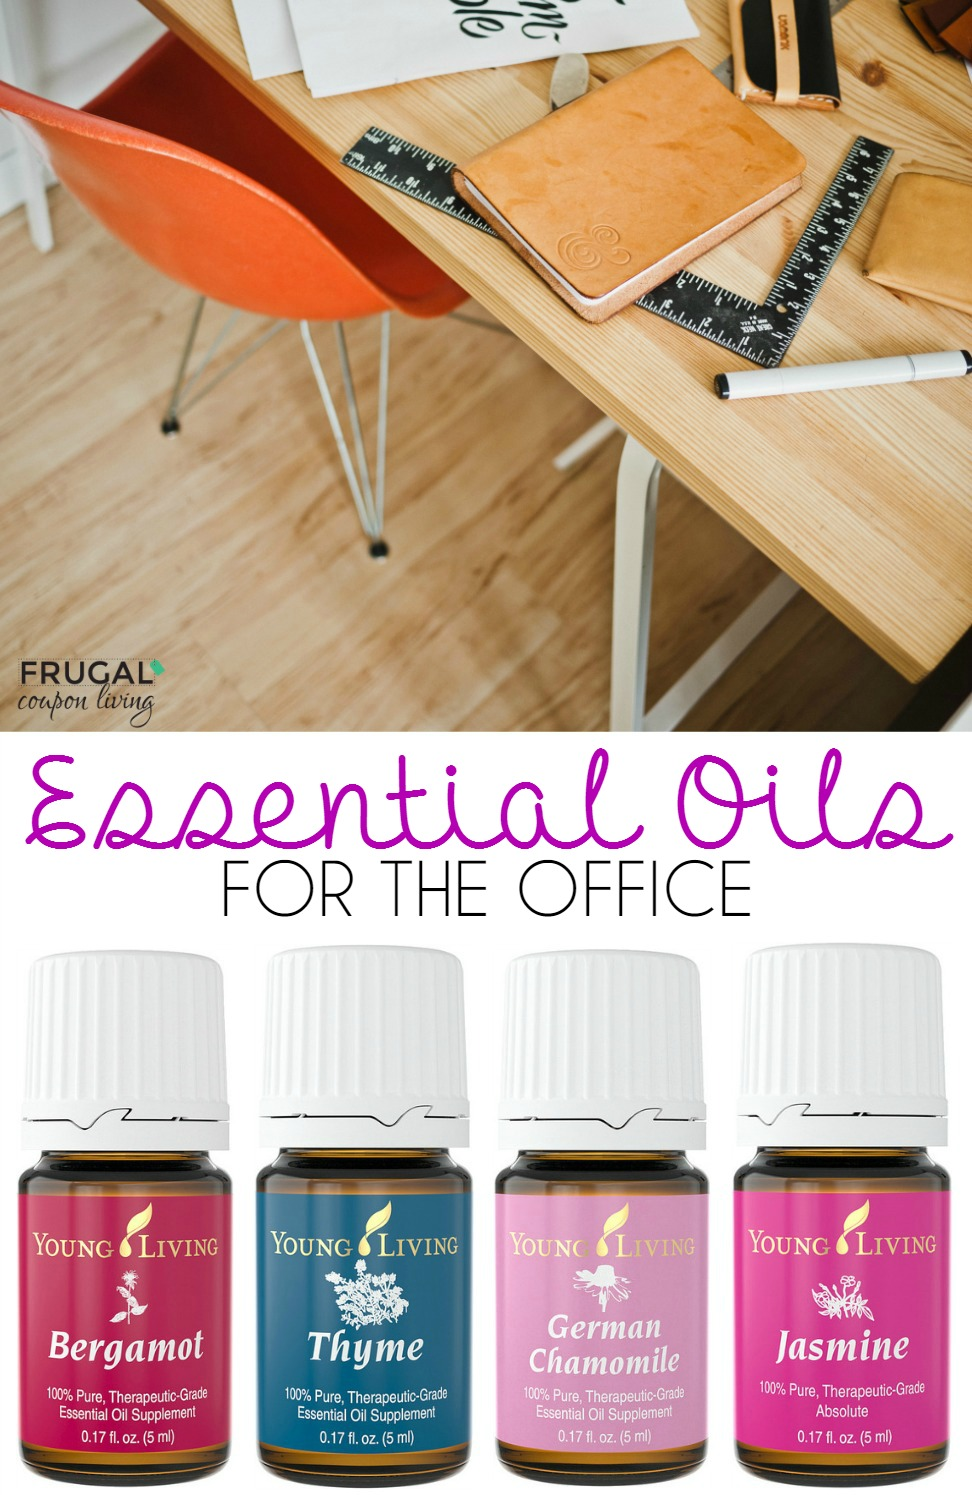 essential-oils-for-the-office-frugal-coupon-living-with-title